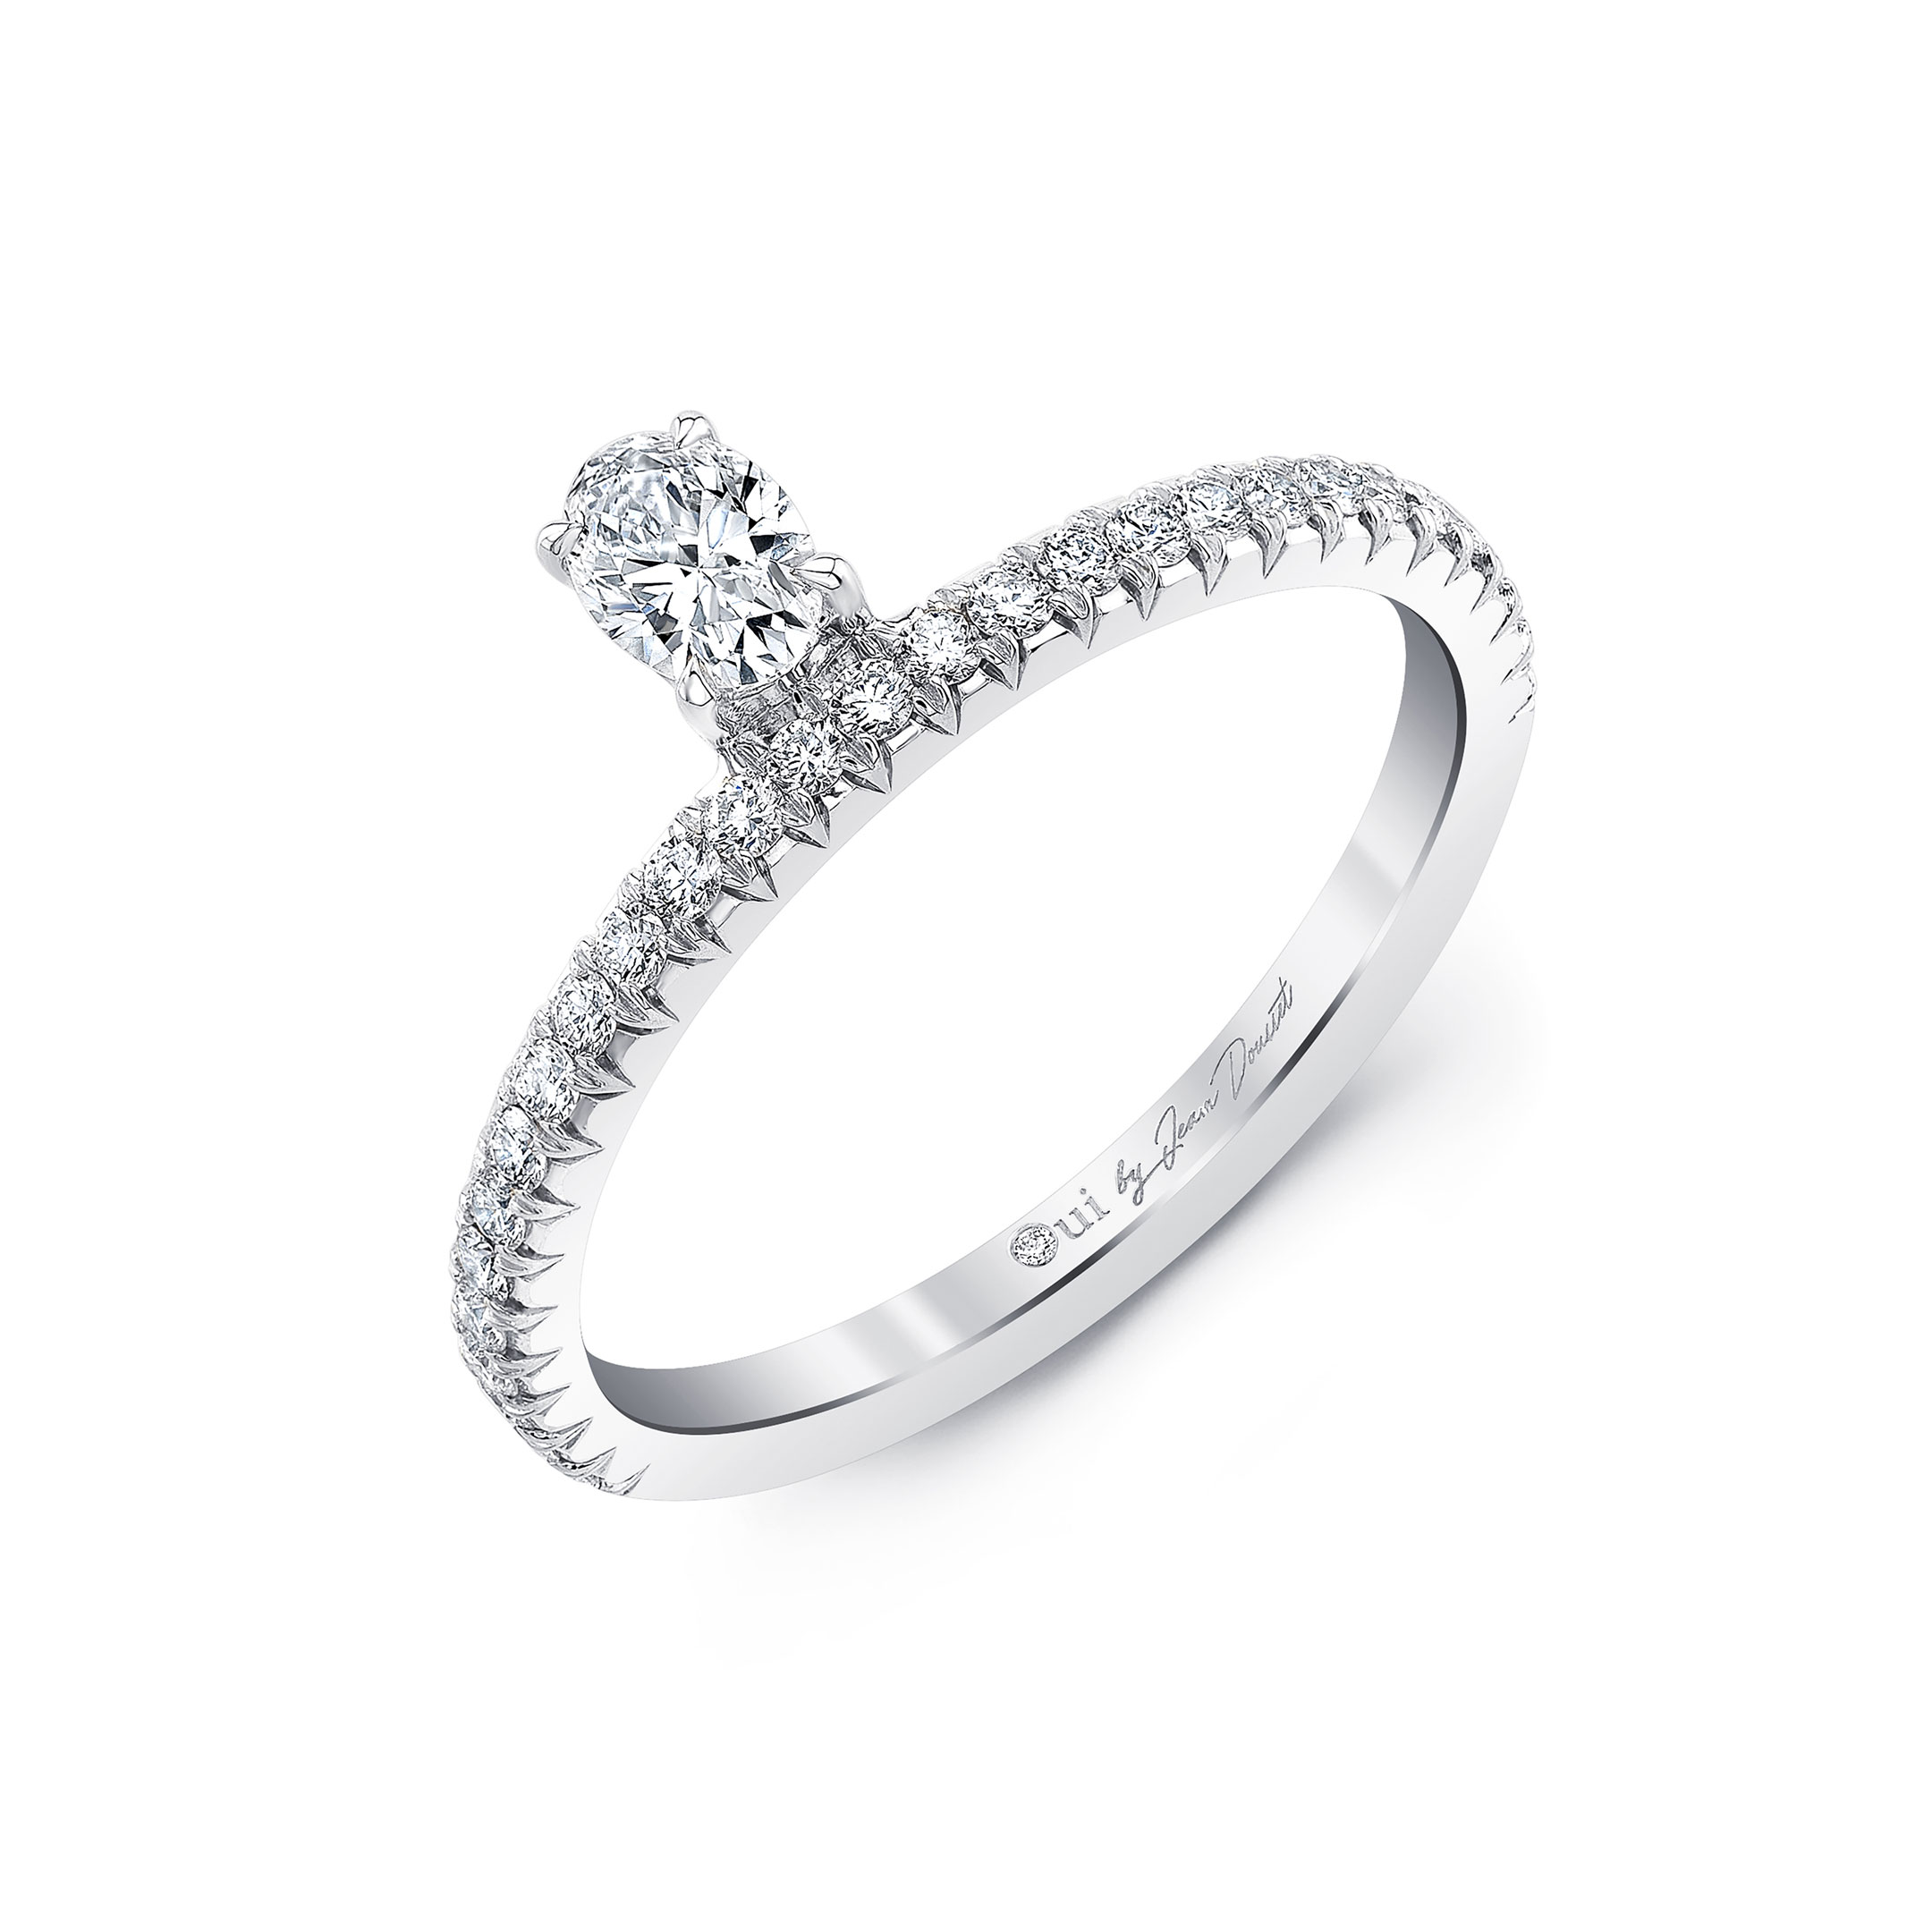 Eloise Floating Oval Diamond Ring in 18k White Gold Profile View by Oui by Jean Dousset